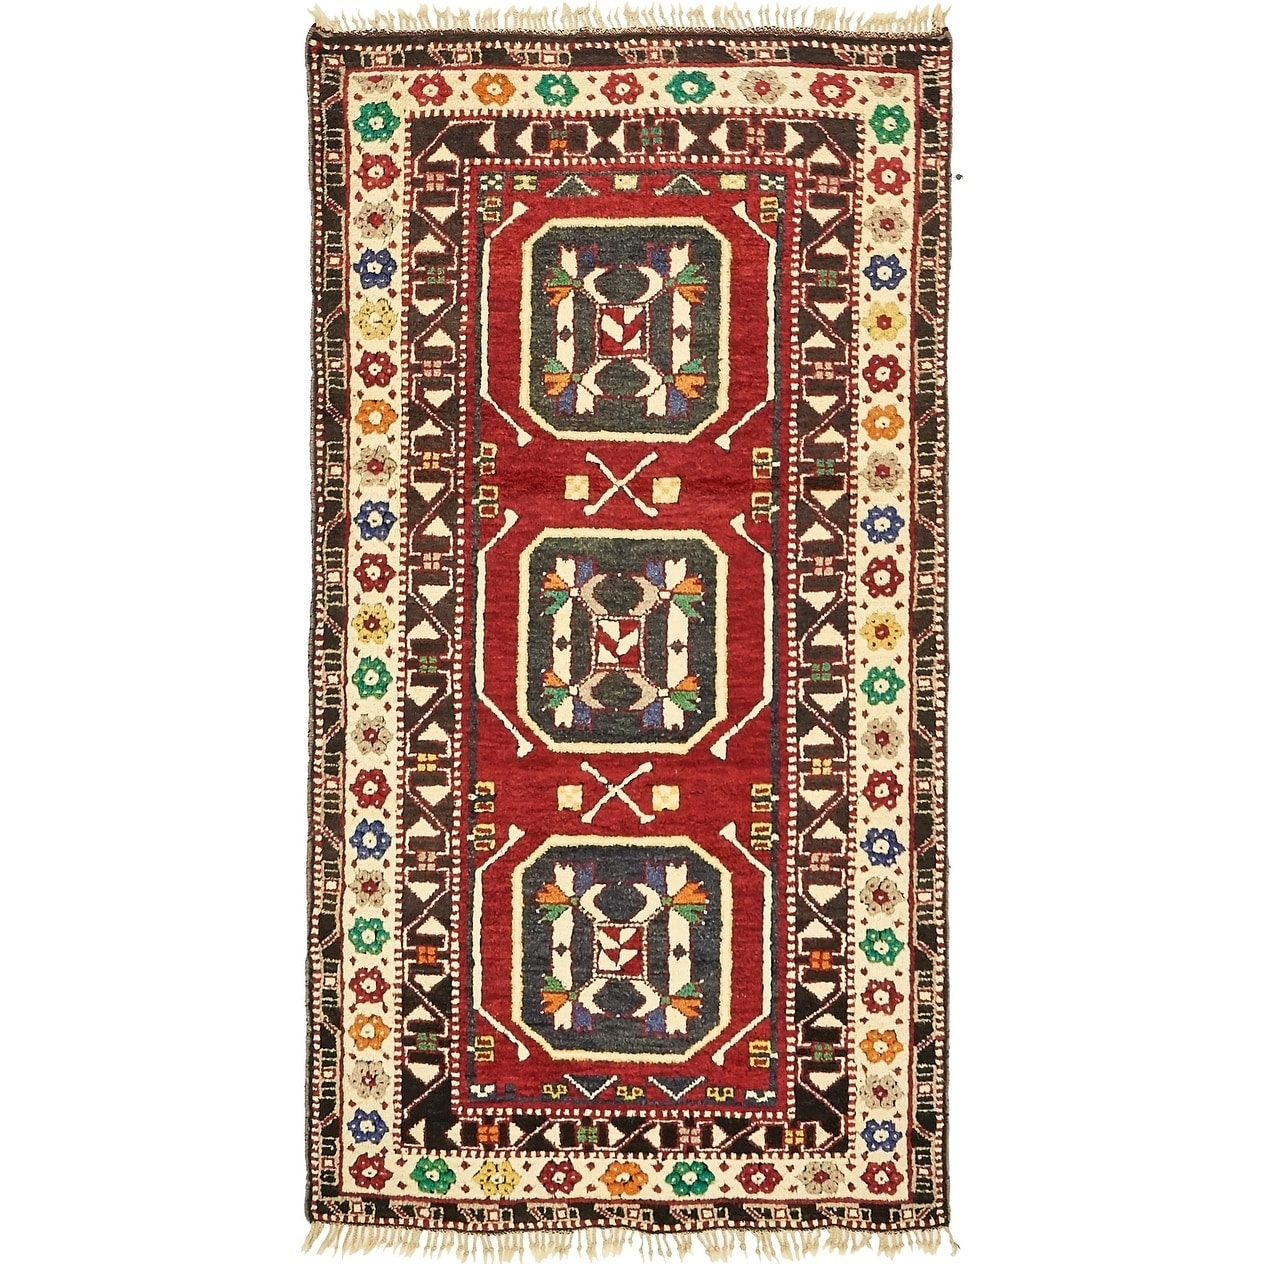 Hand Knotted Kars Wool Area Rug - 3' 3 x 6' 3 (Black - 3' 3 x 6' 3)